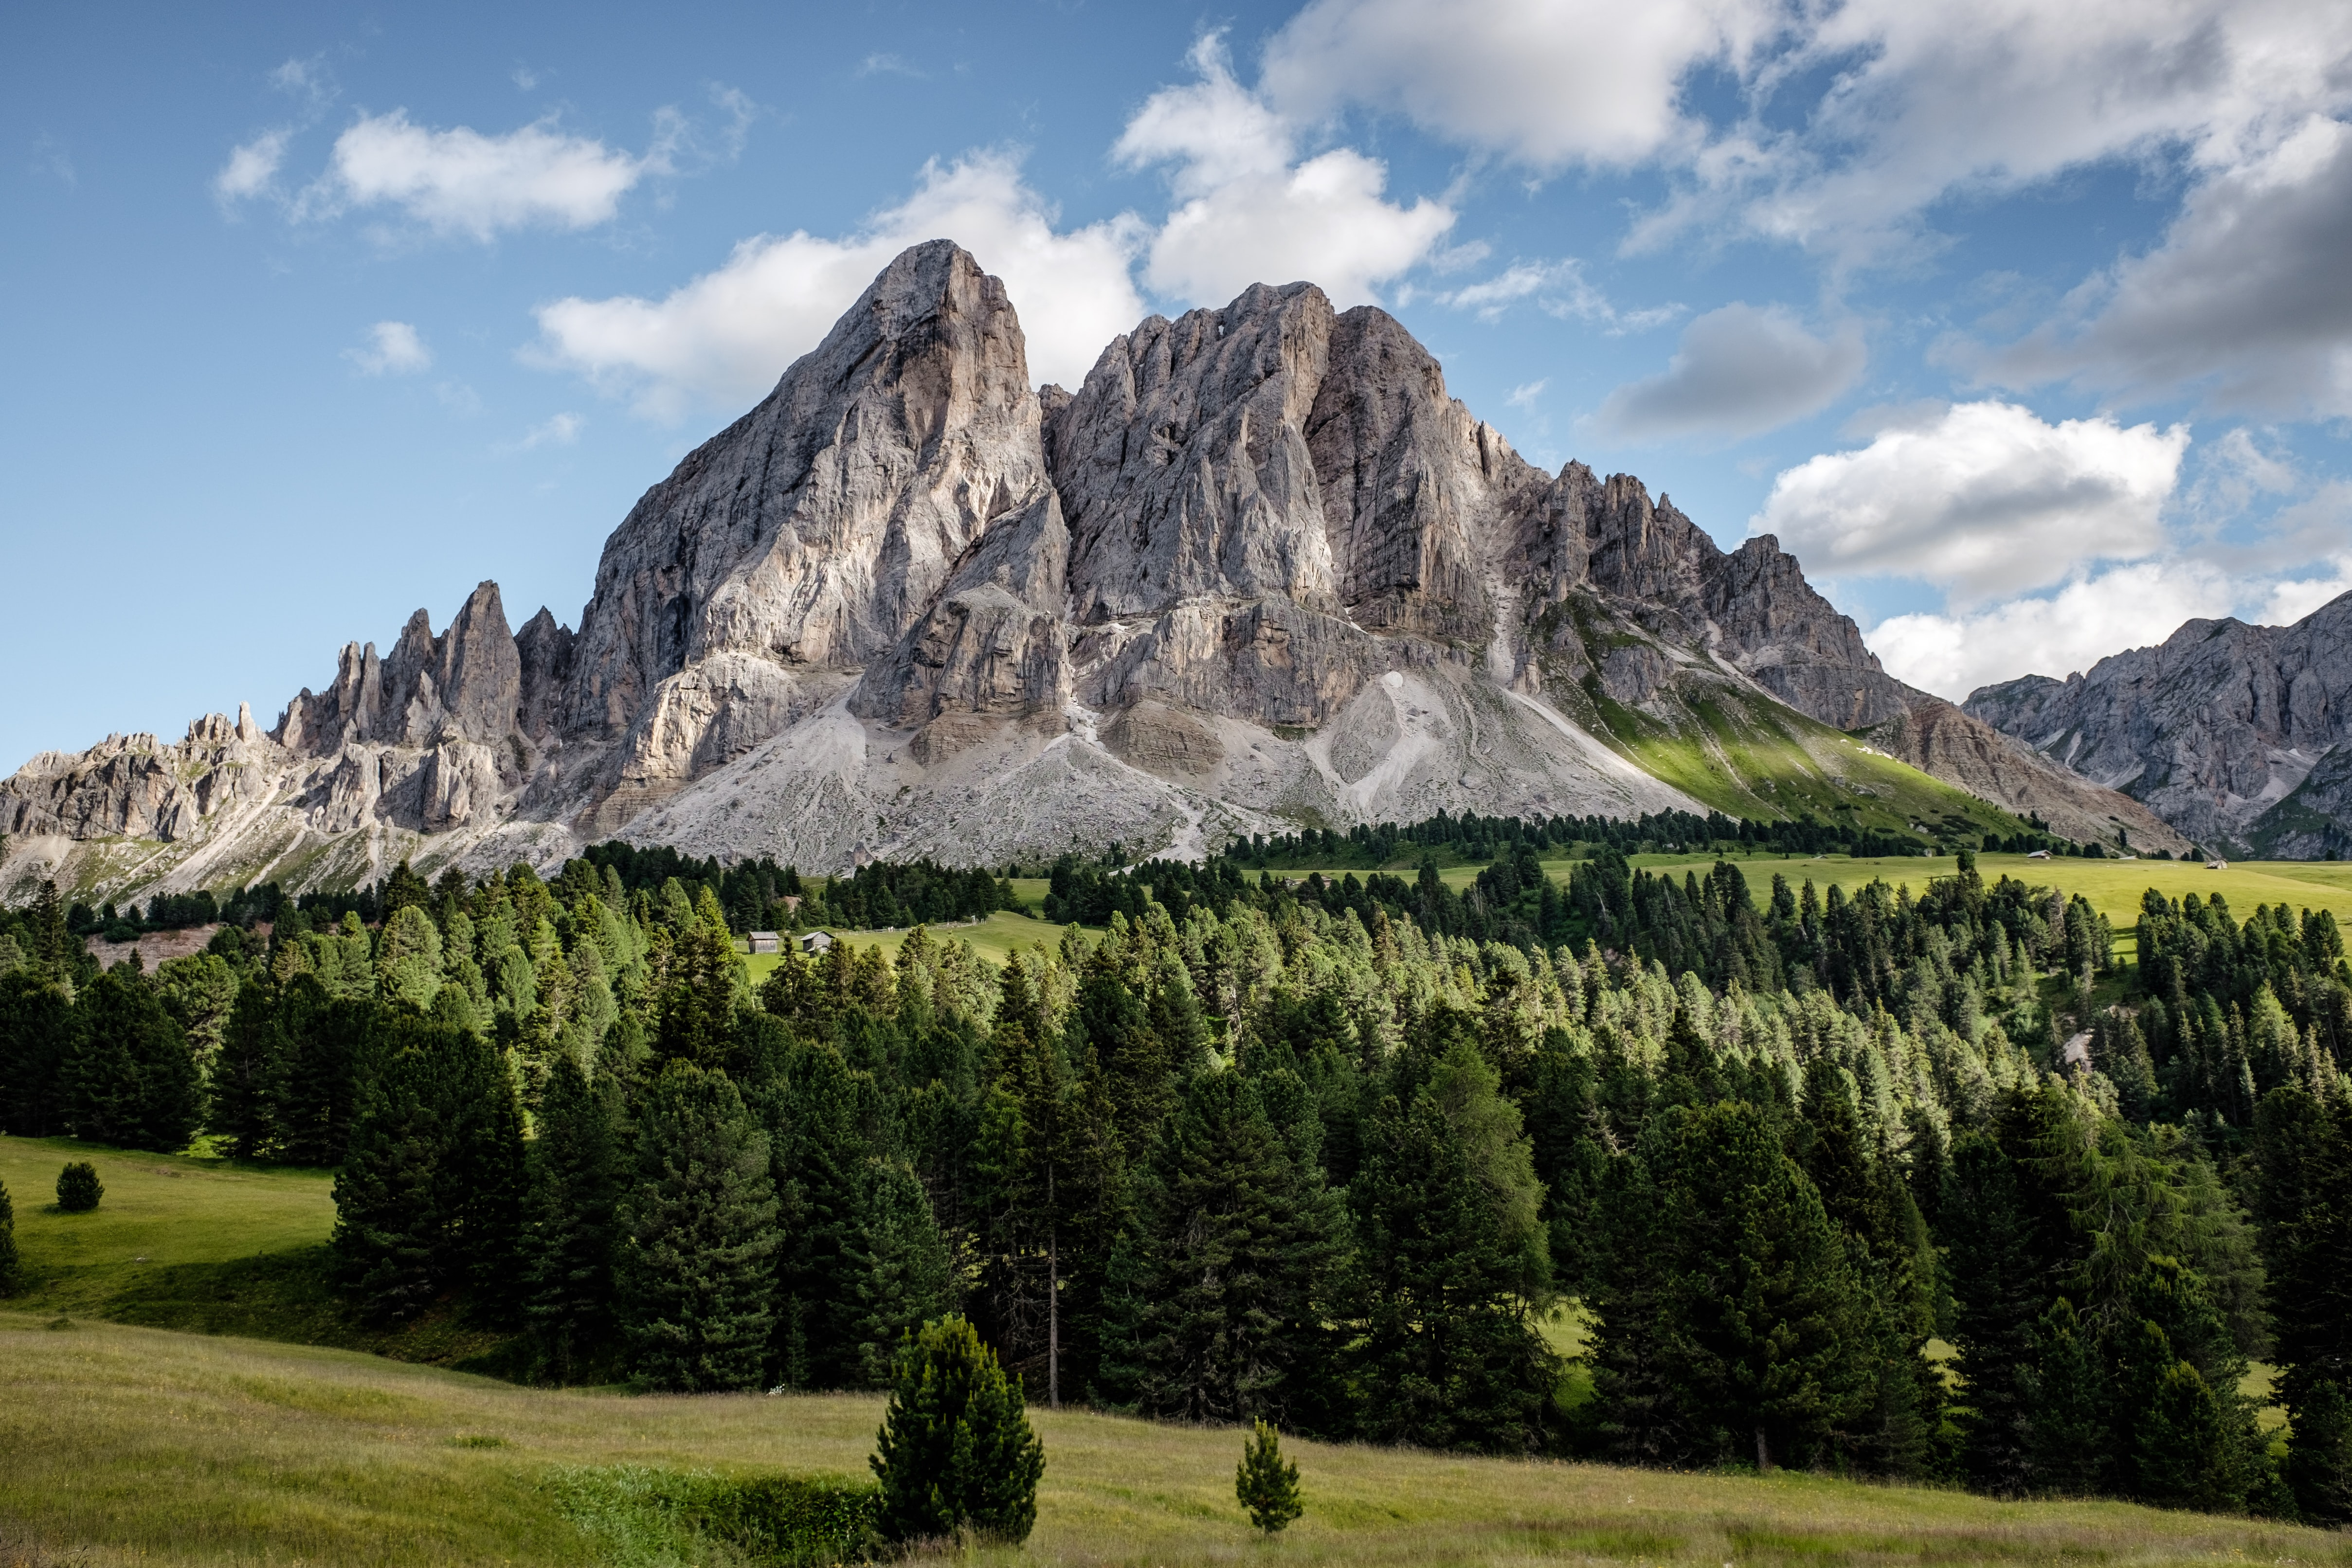 An evergreen forest at the foot of a jagged granite mountain in San Martino in Badia